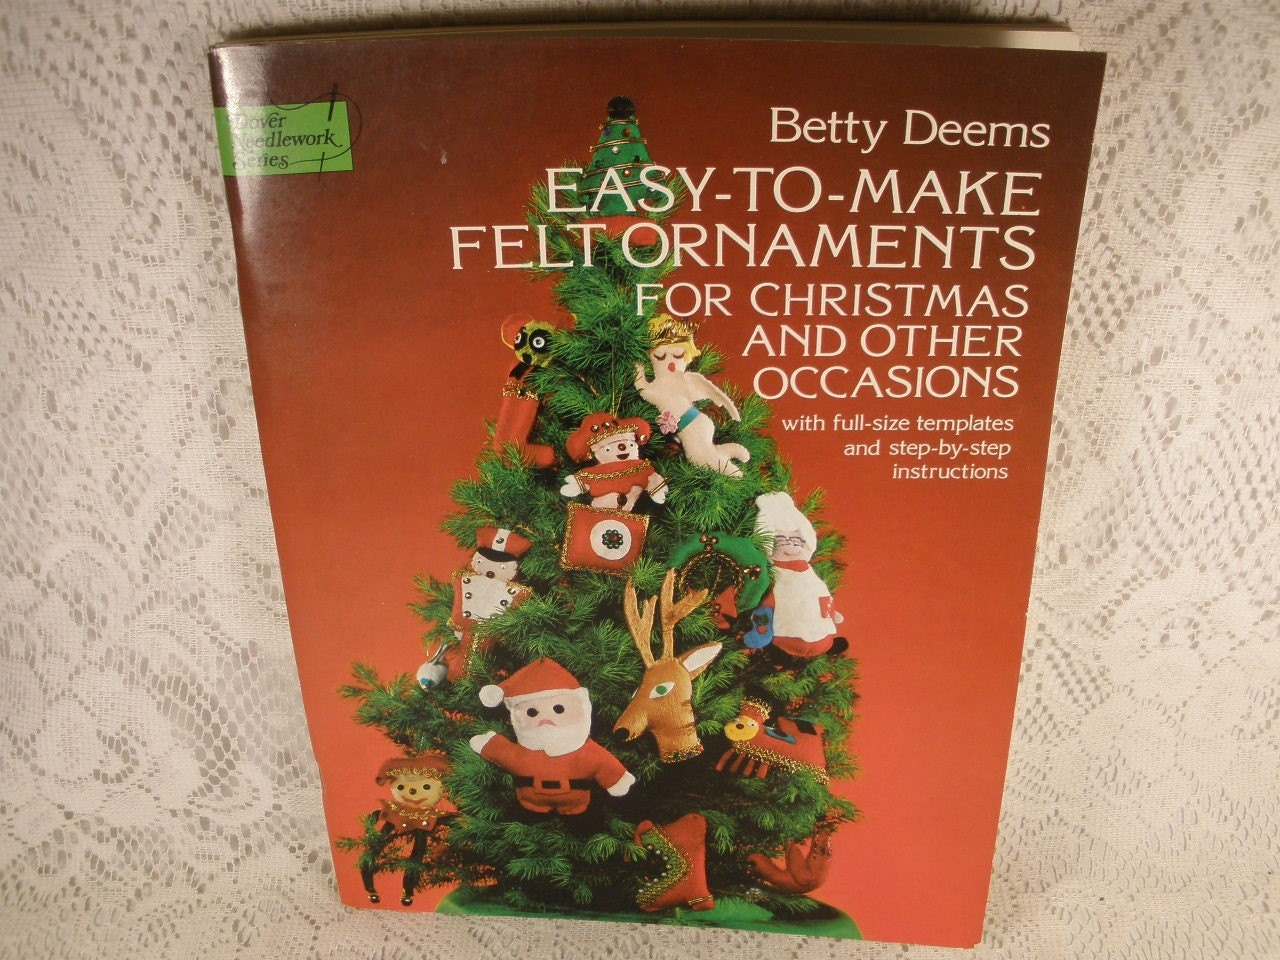 Easy-to-Make Felt Ornaments for Christmas and Other Occasions - with Full-Size Templates and Step-by-Step Instructions Betty Deems